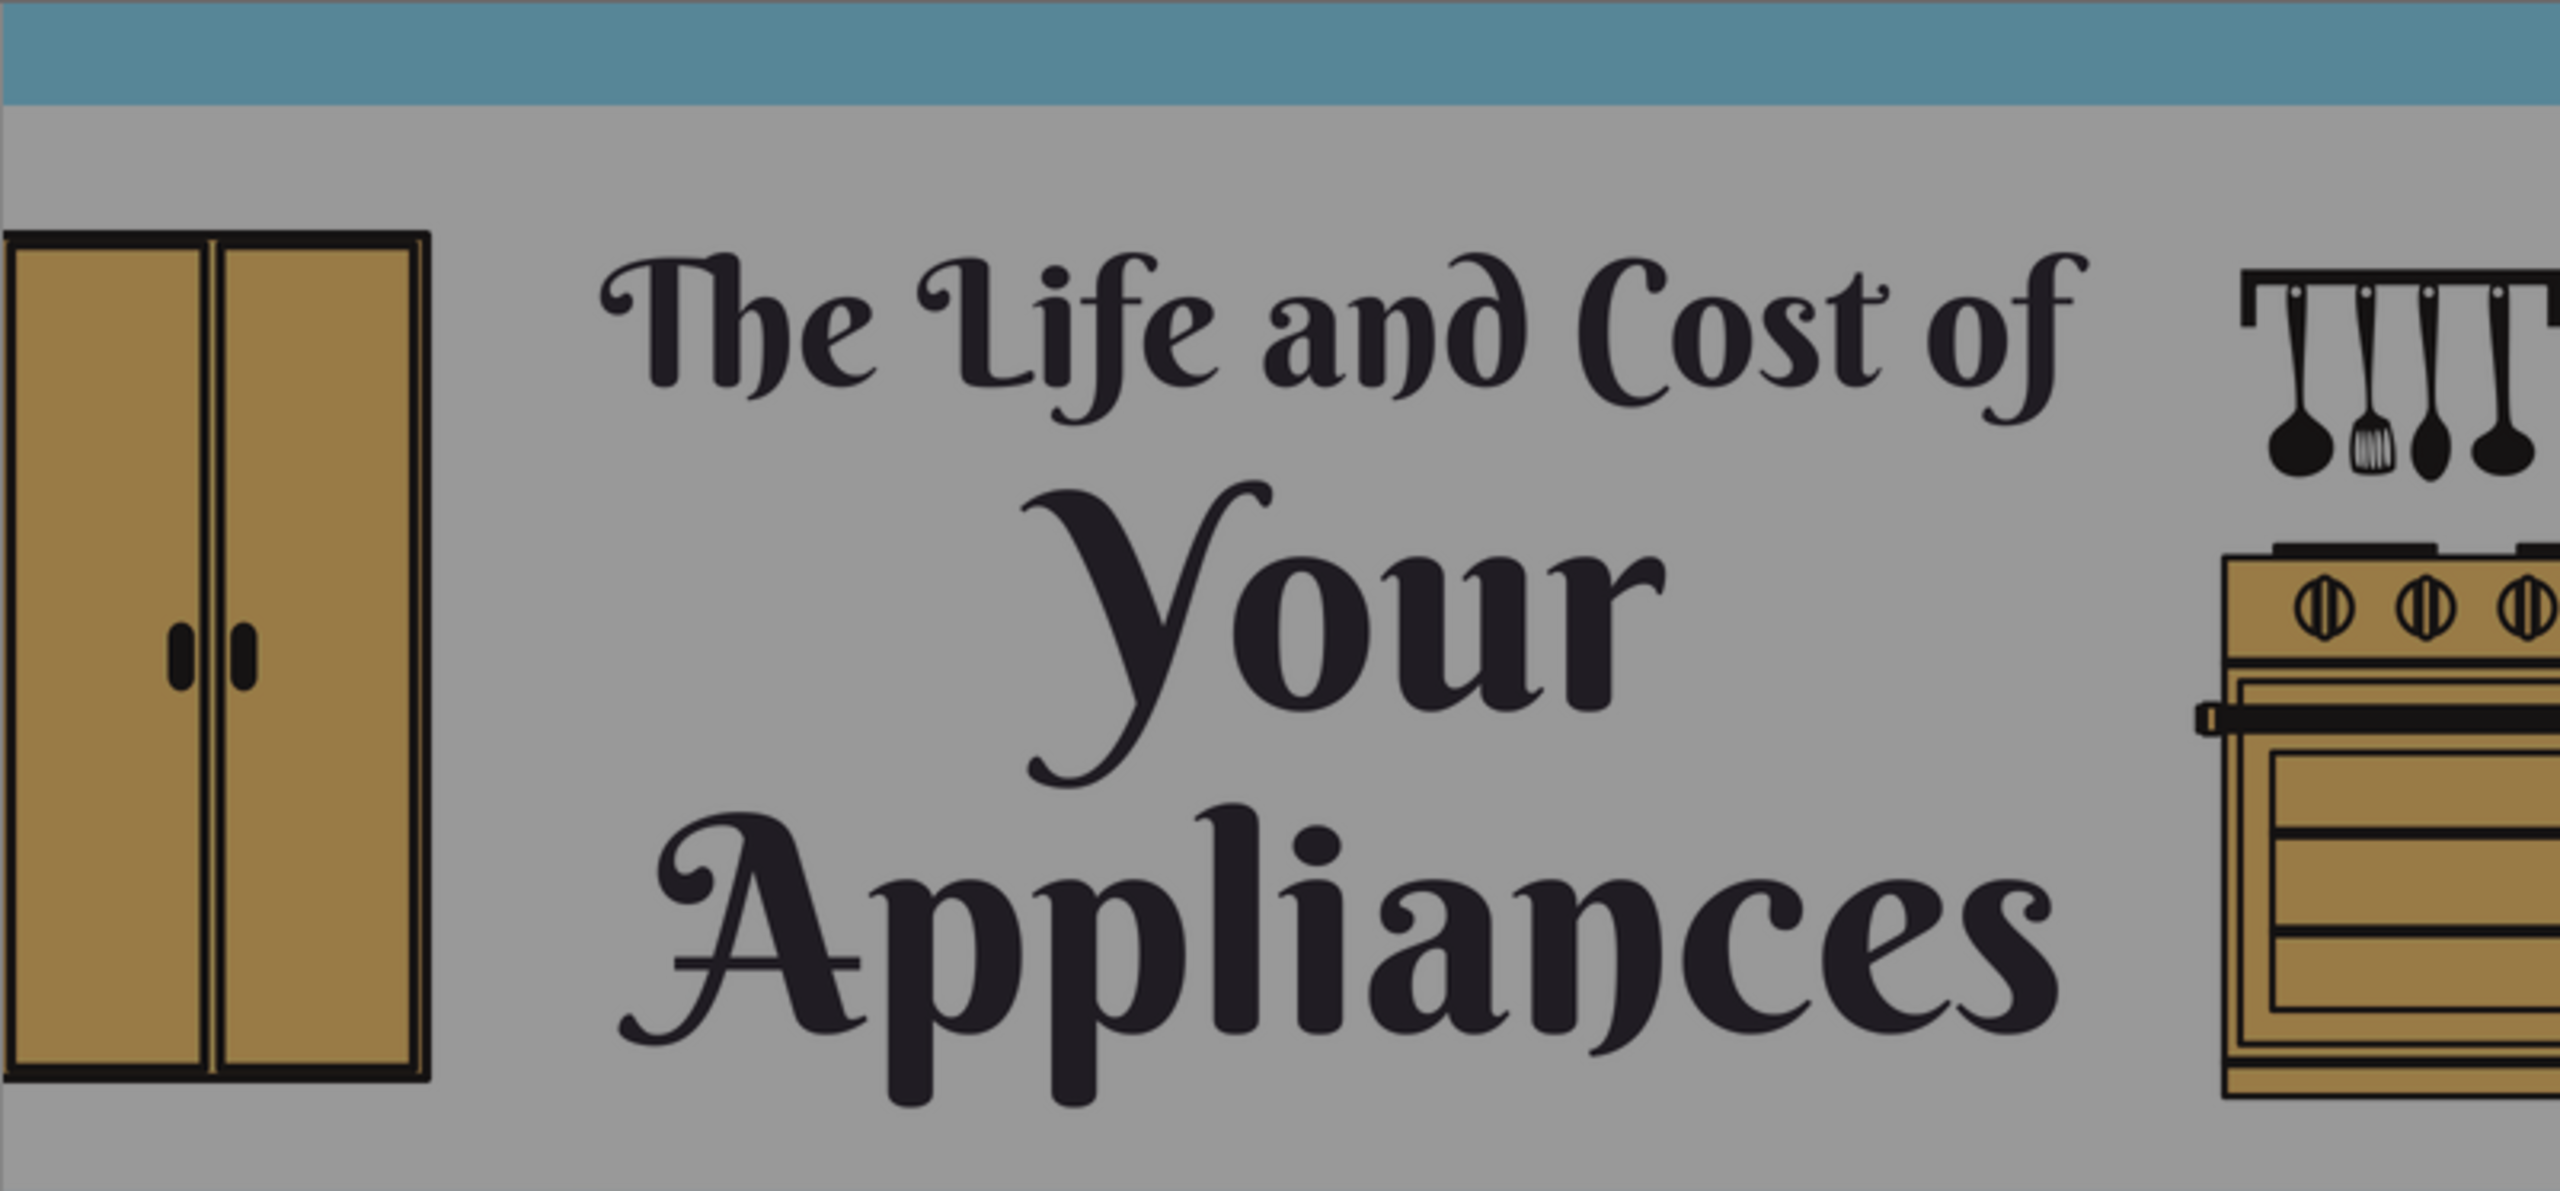 The Life and Cost of Your Appliances